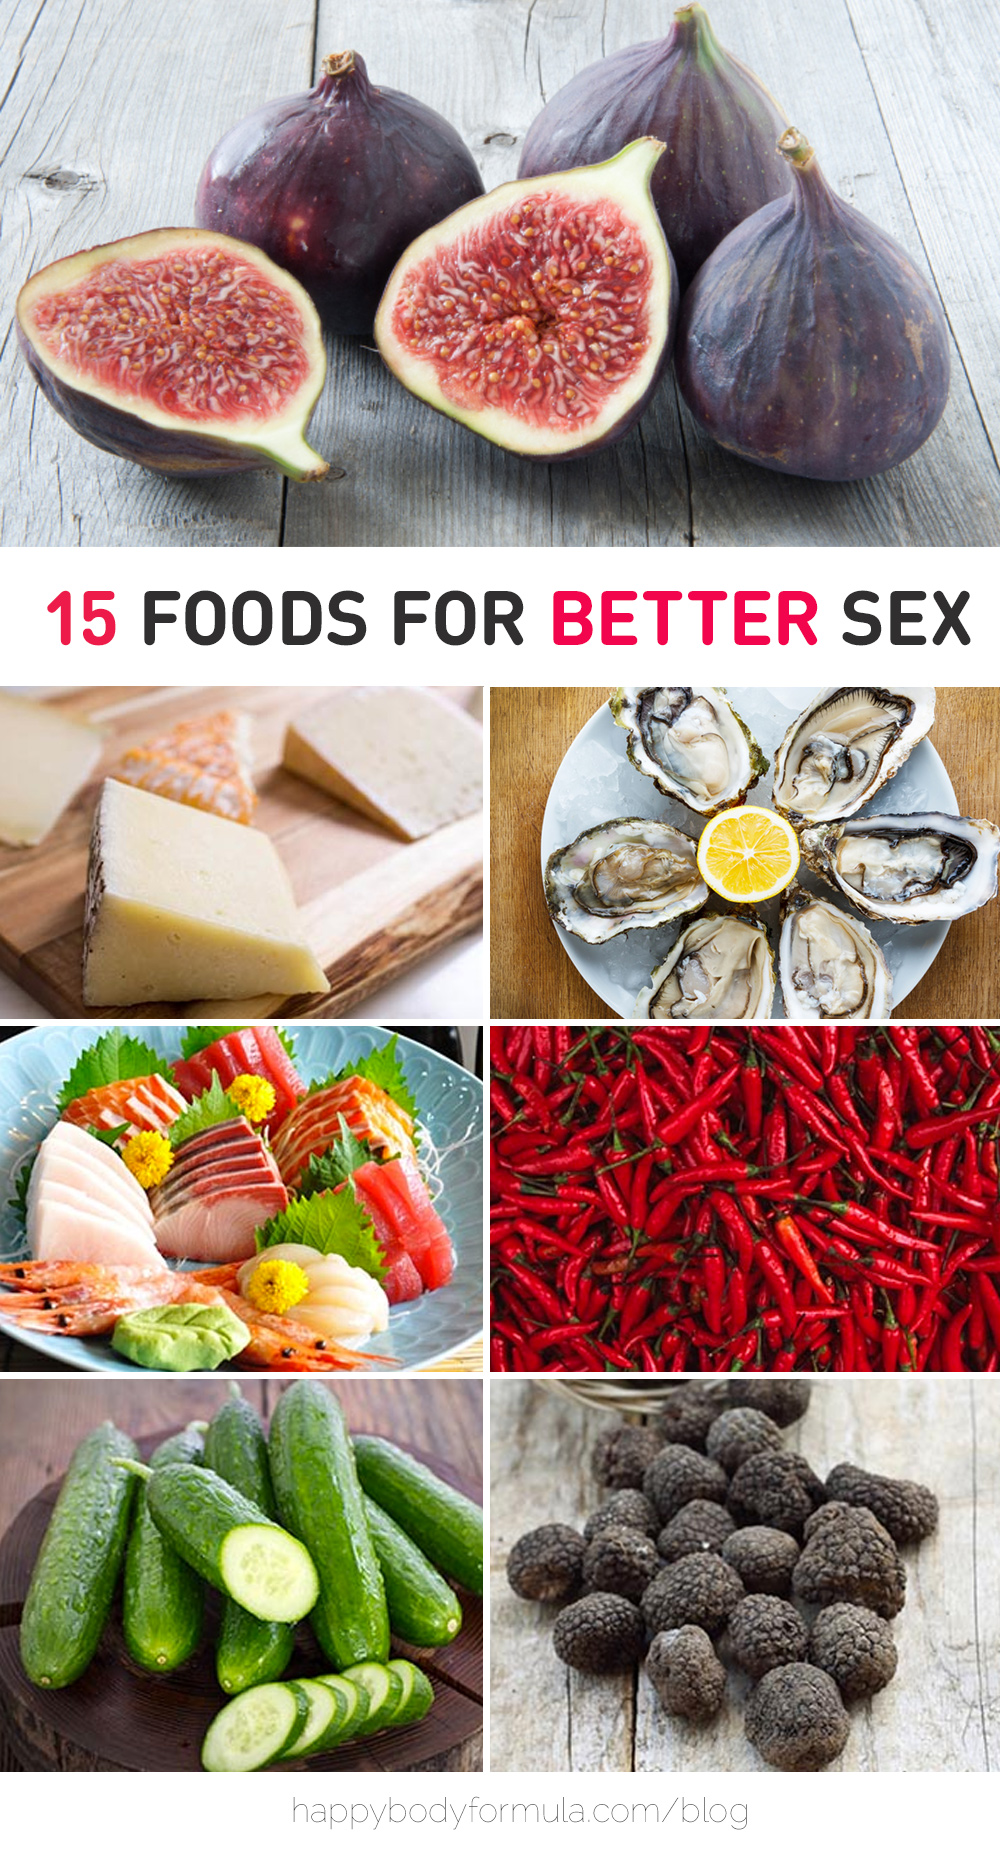 15 Foods For Better Sex (& Healthy Libido) | HappyBodyFormula.com